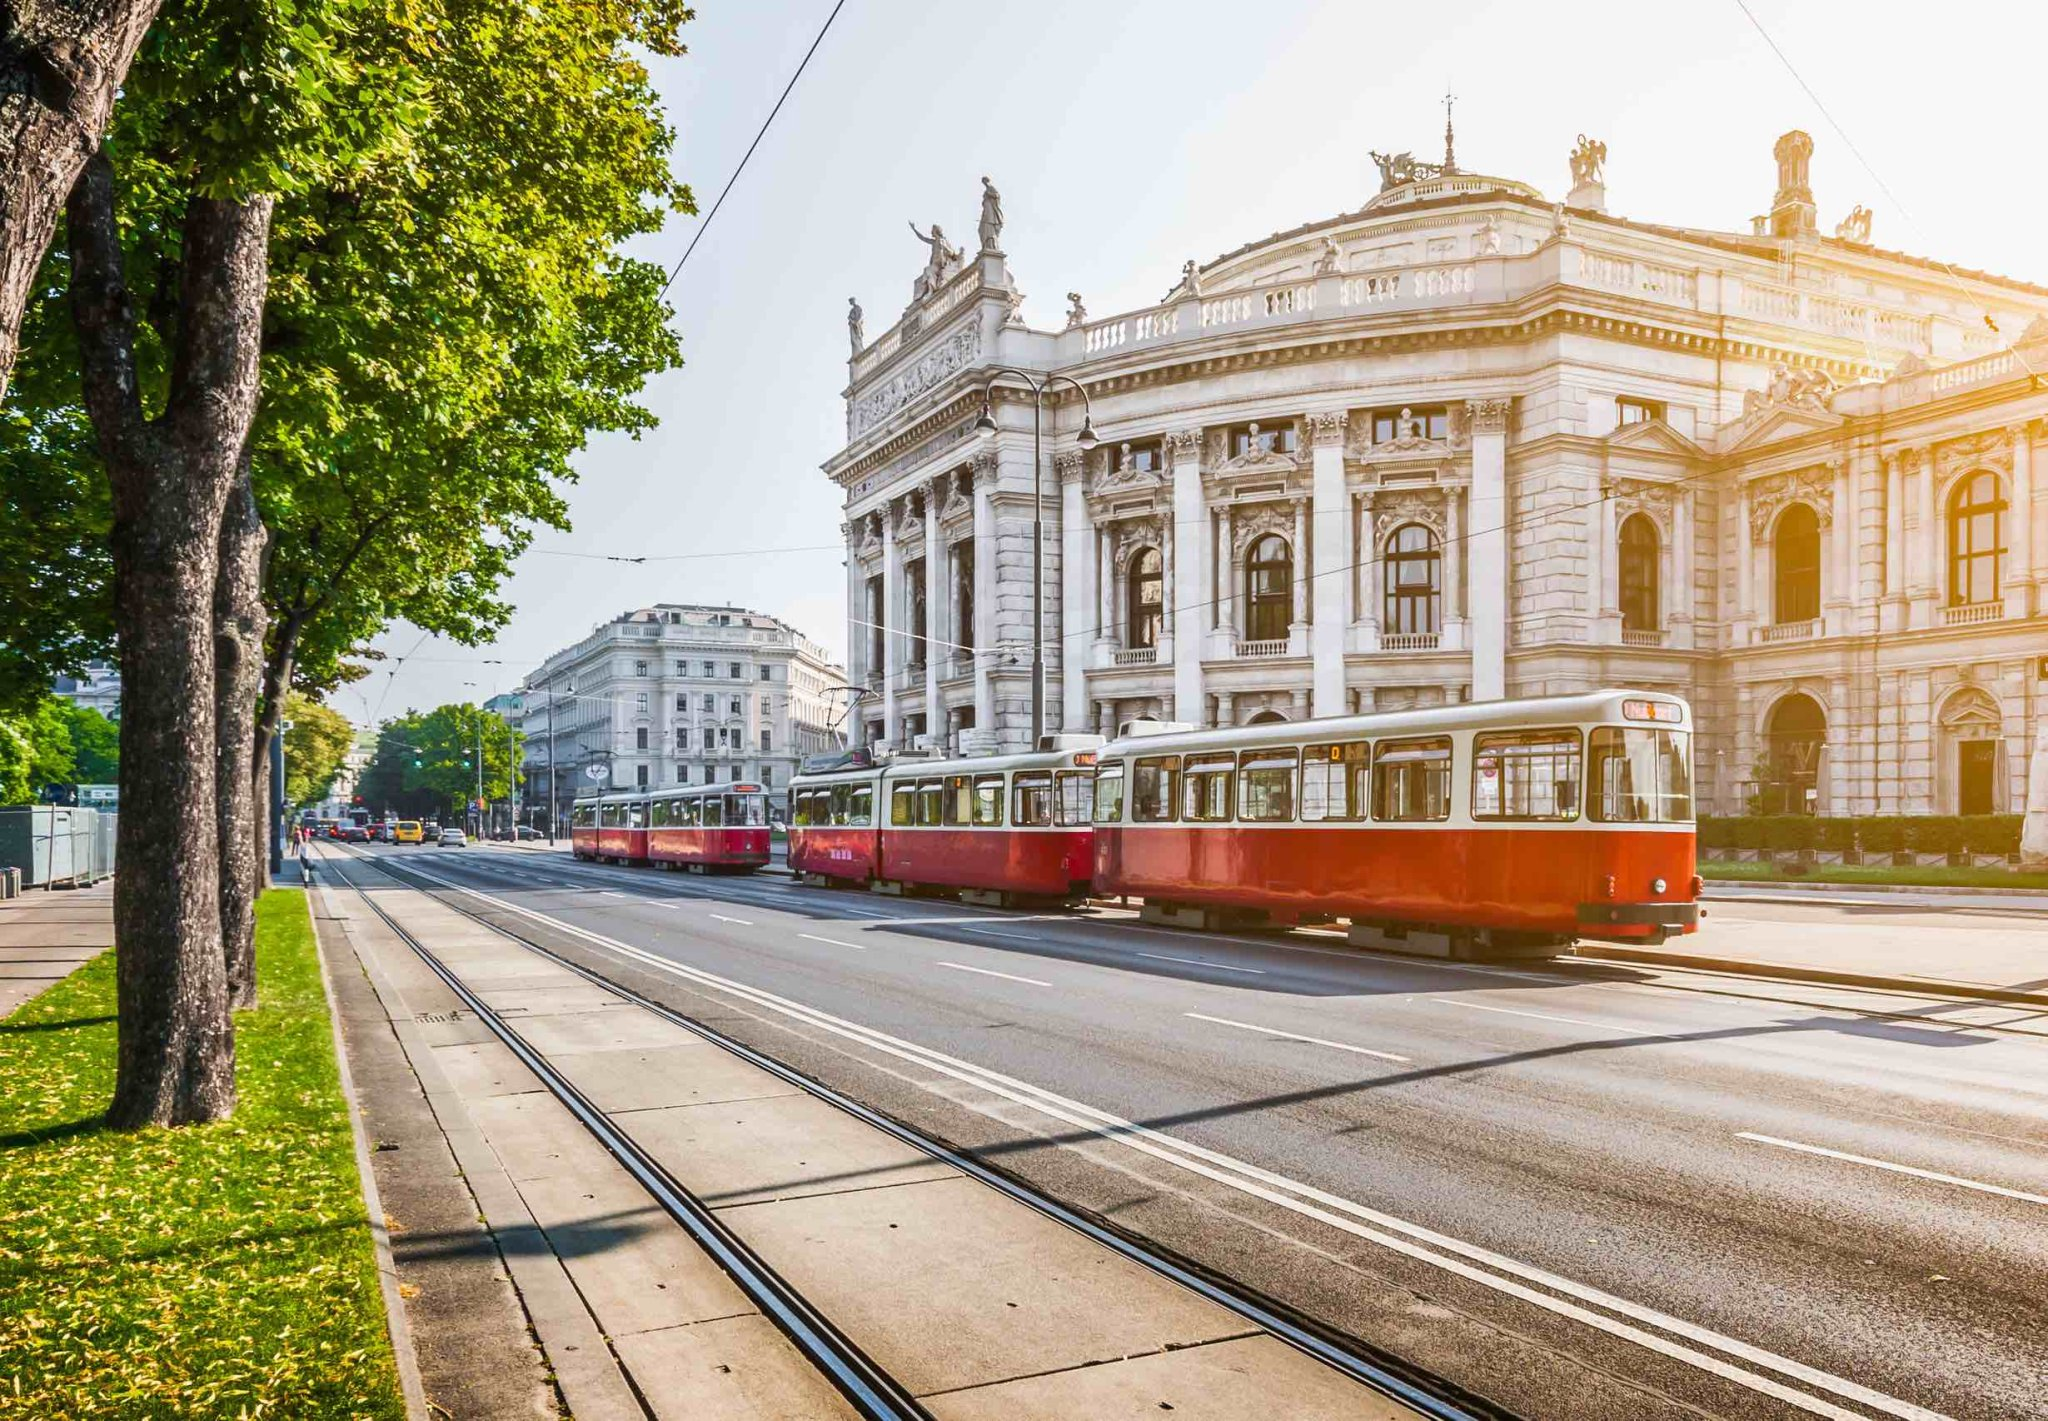 48 Hours In Vienna: Where To Stay, What To Eat And More